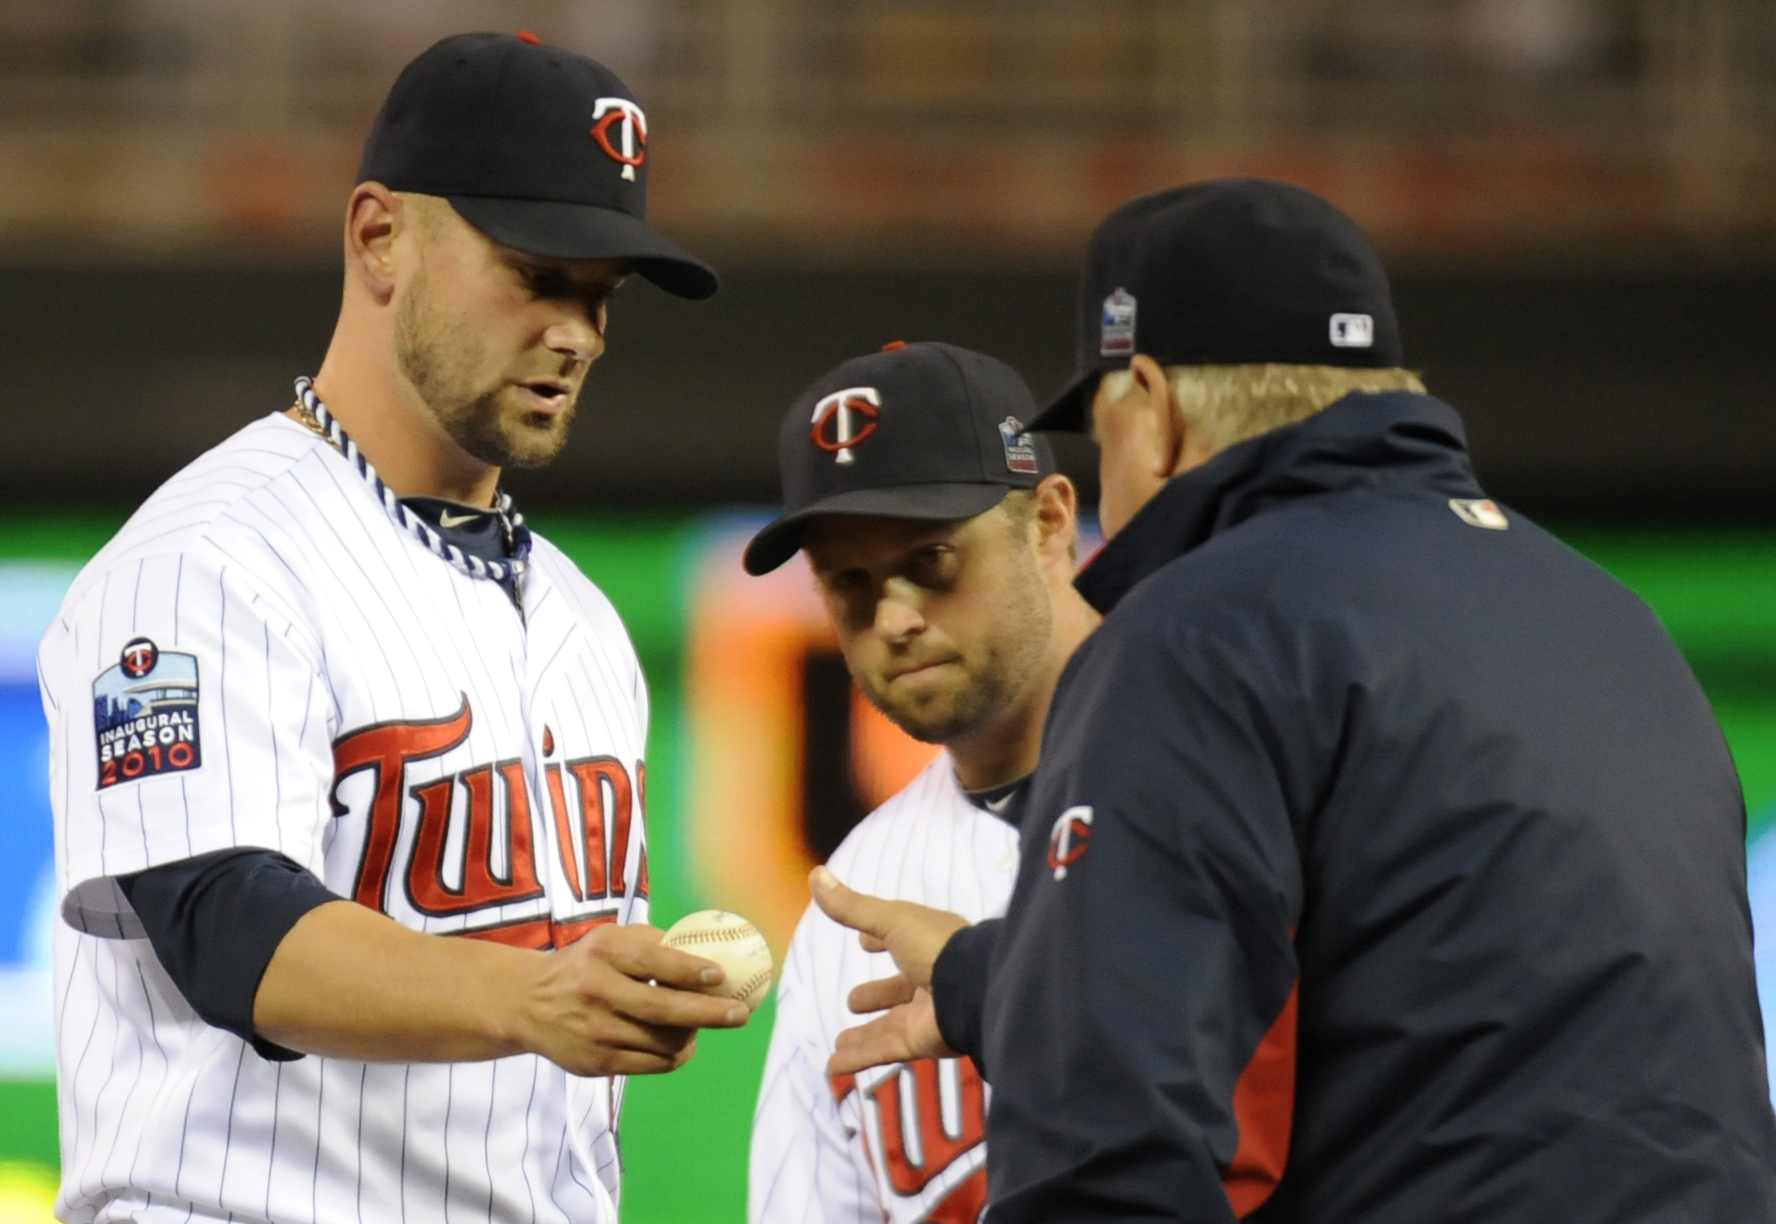 MINNEAPOLIS, MN - OCTOBER 6: Jesse Crain #28 of the Minnesota Twins is pulled from game one of the ALDS against the New York Yankees by manager Ron Gardenhire #35 on October 6, 2010 at Target Field in Minneapolis, Minnesota. (Photo by Hannah Foslien /Gett